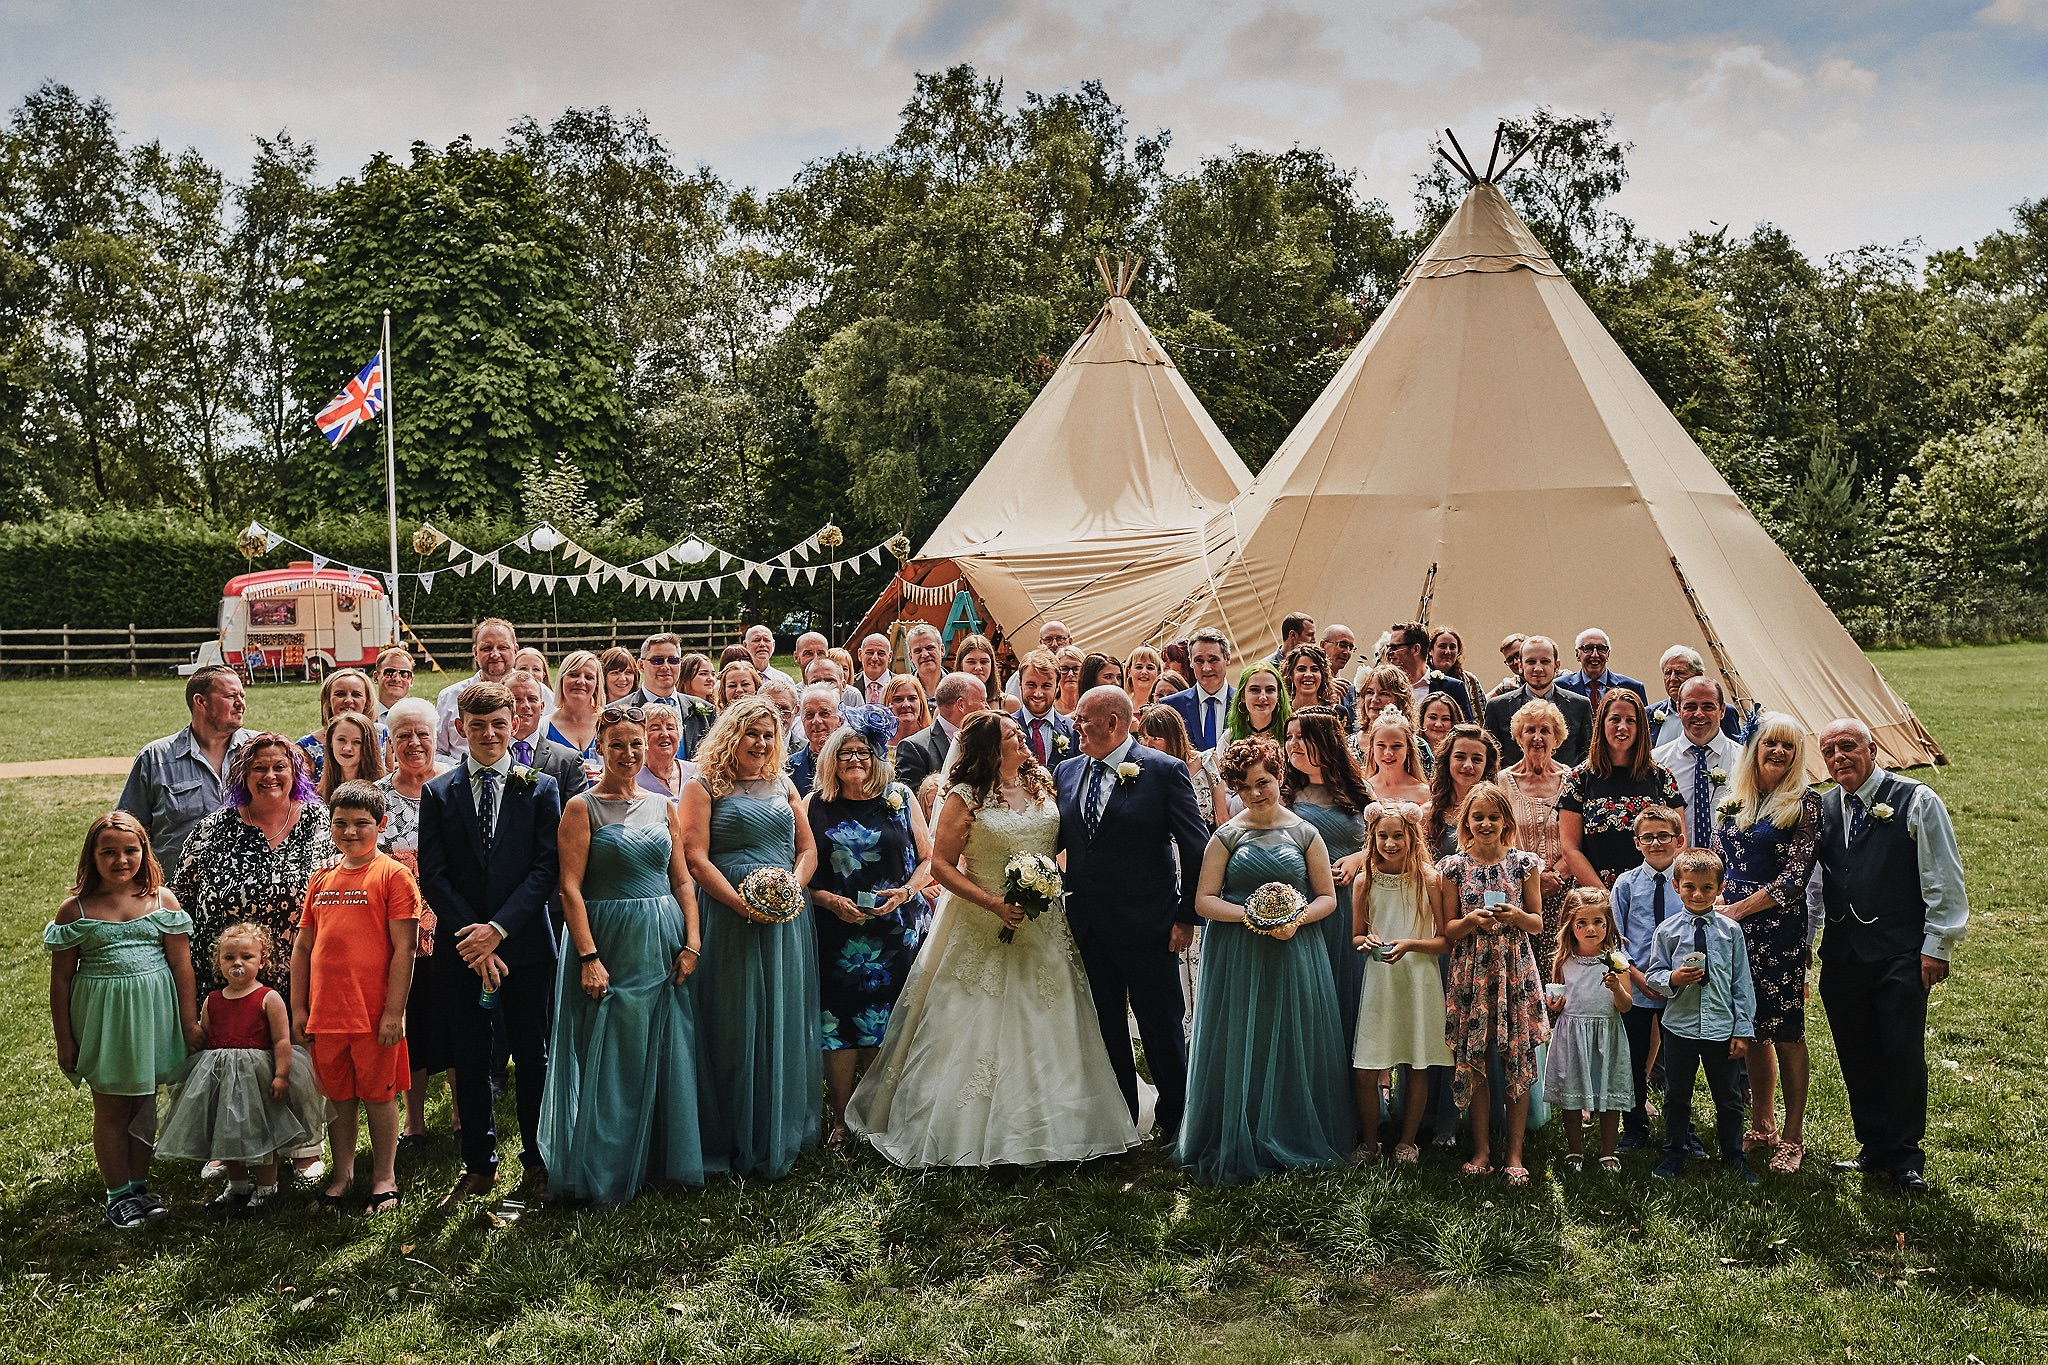 Summer Festival Camp Tipi Wedding